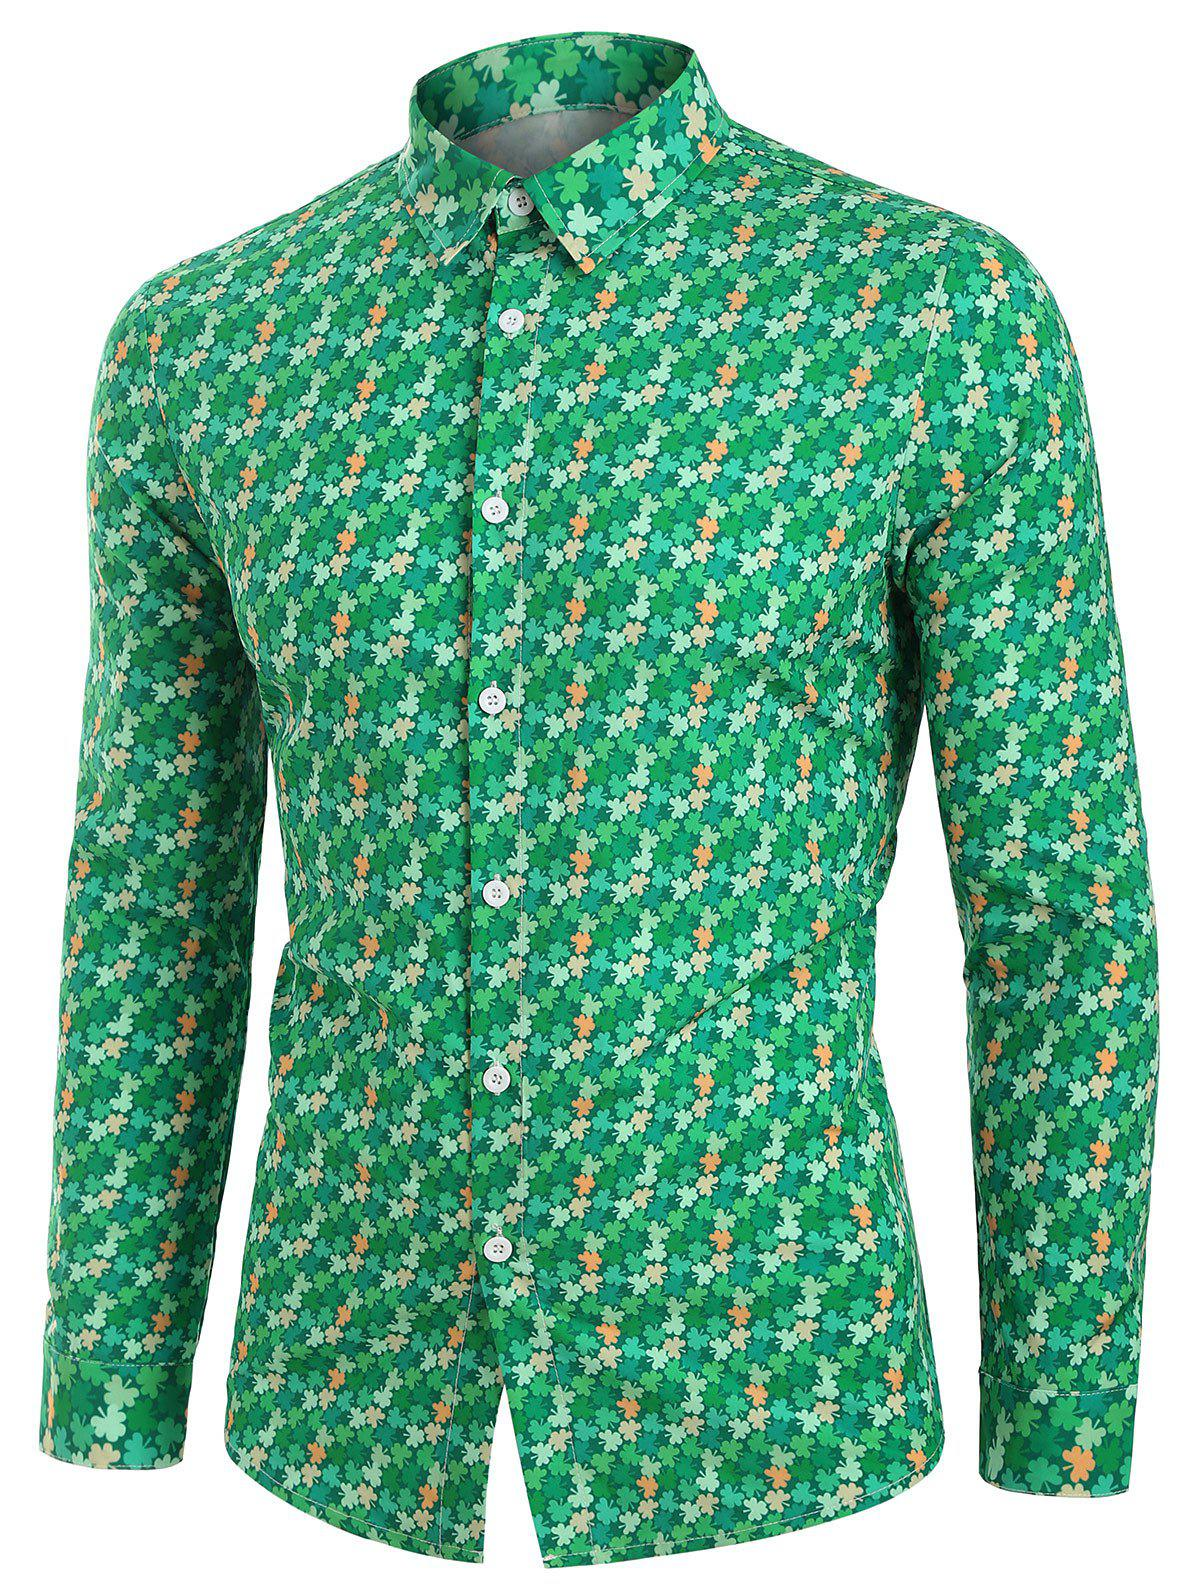 Tiny Leaves Button Up Long Sleeve Shirt - GREEN L